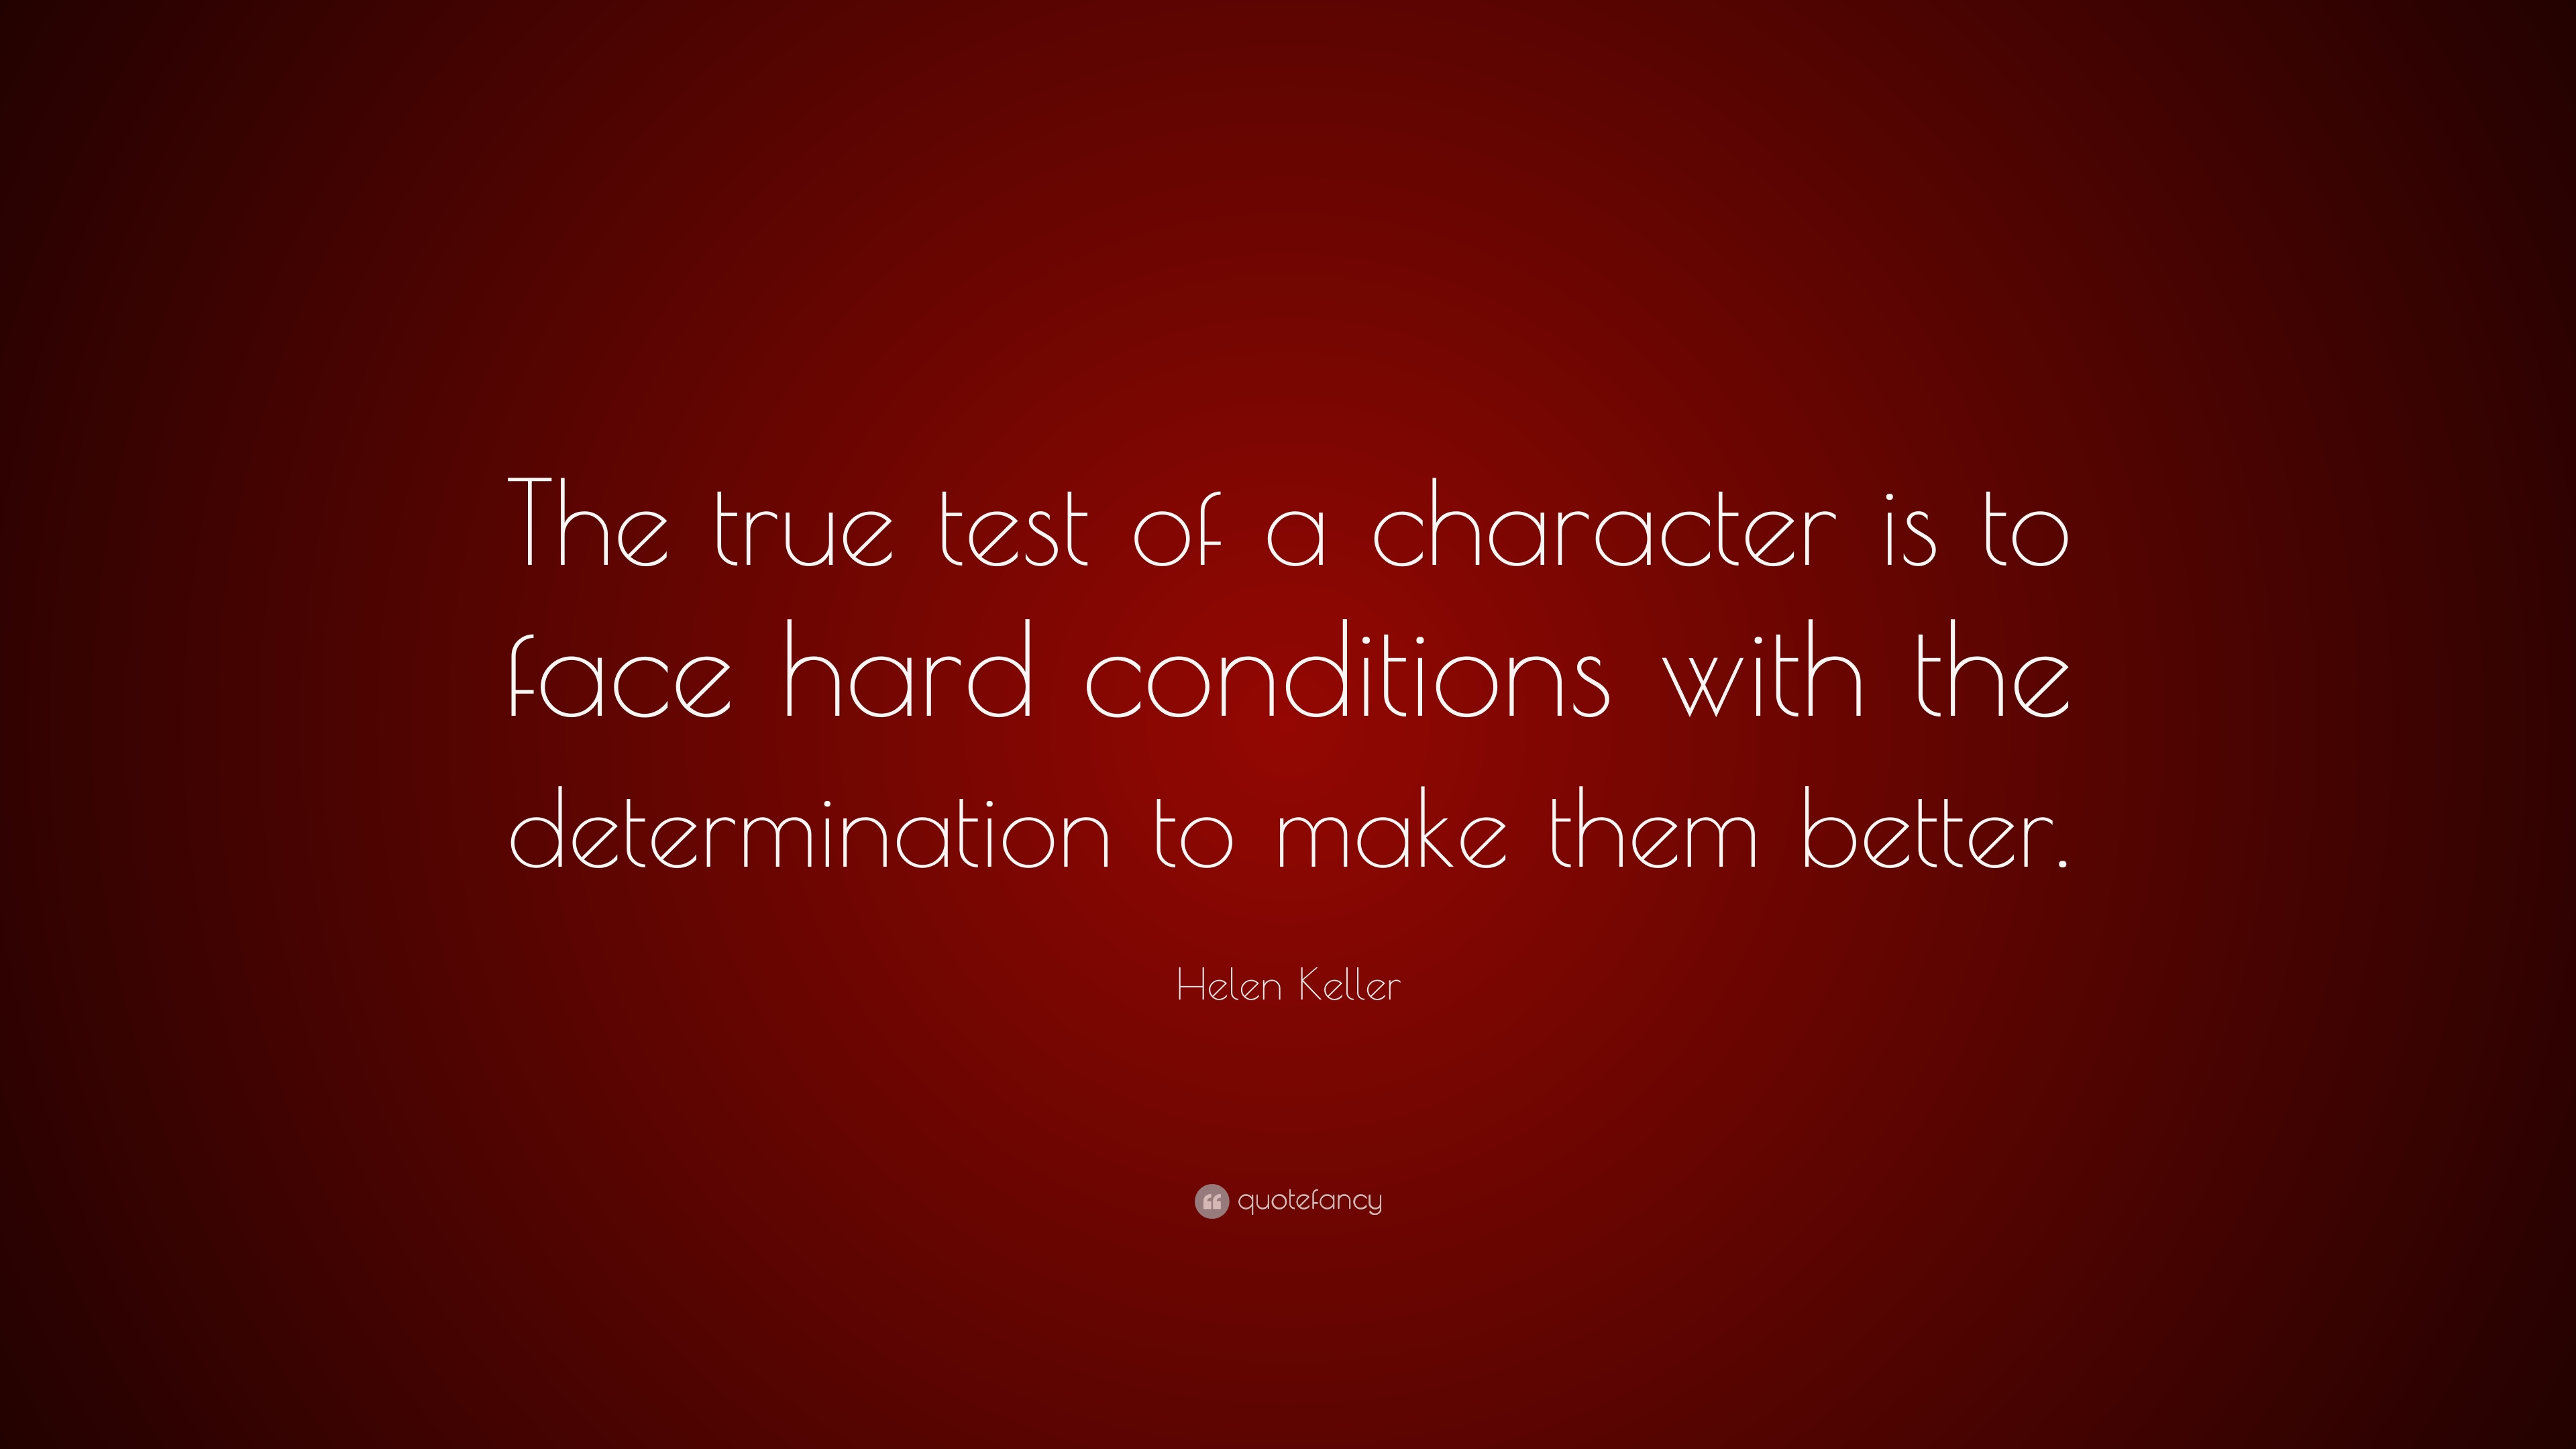 Helen keller quote the true test of a character is to face hard helen keller quote the true test of a character is to face hard conditions altavistaventures